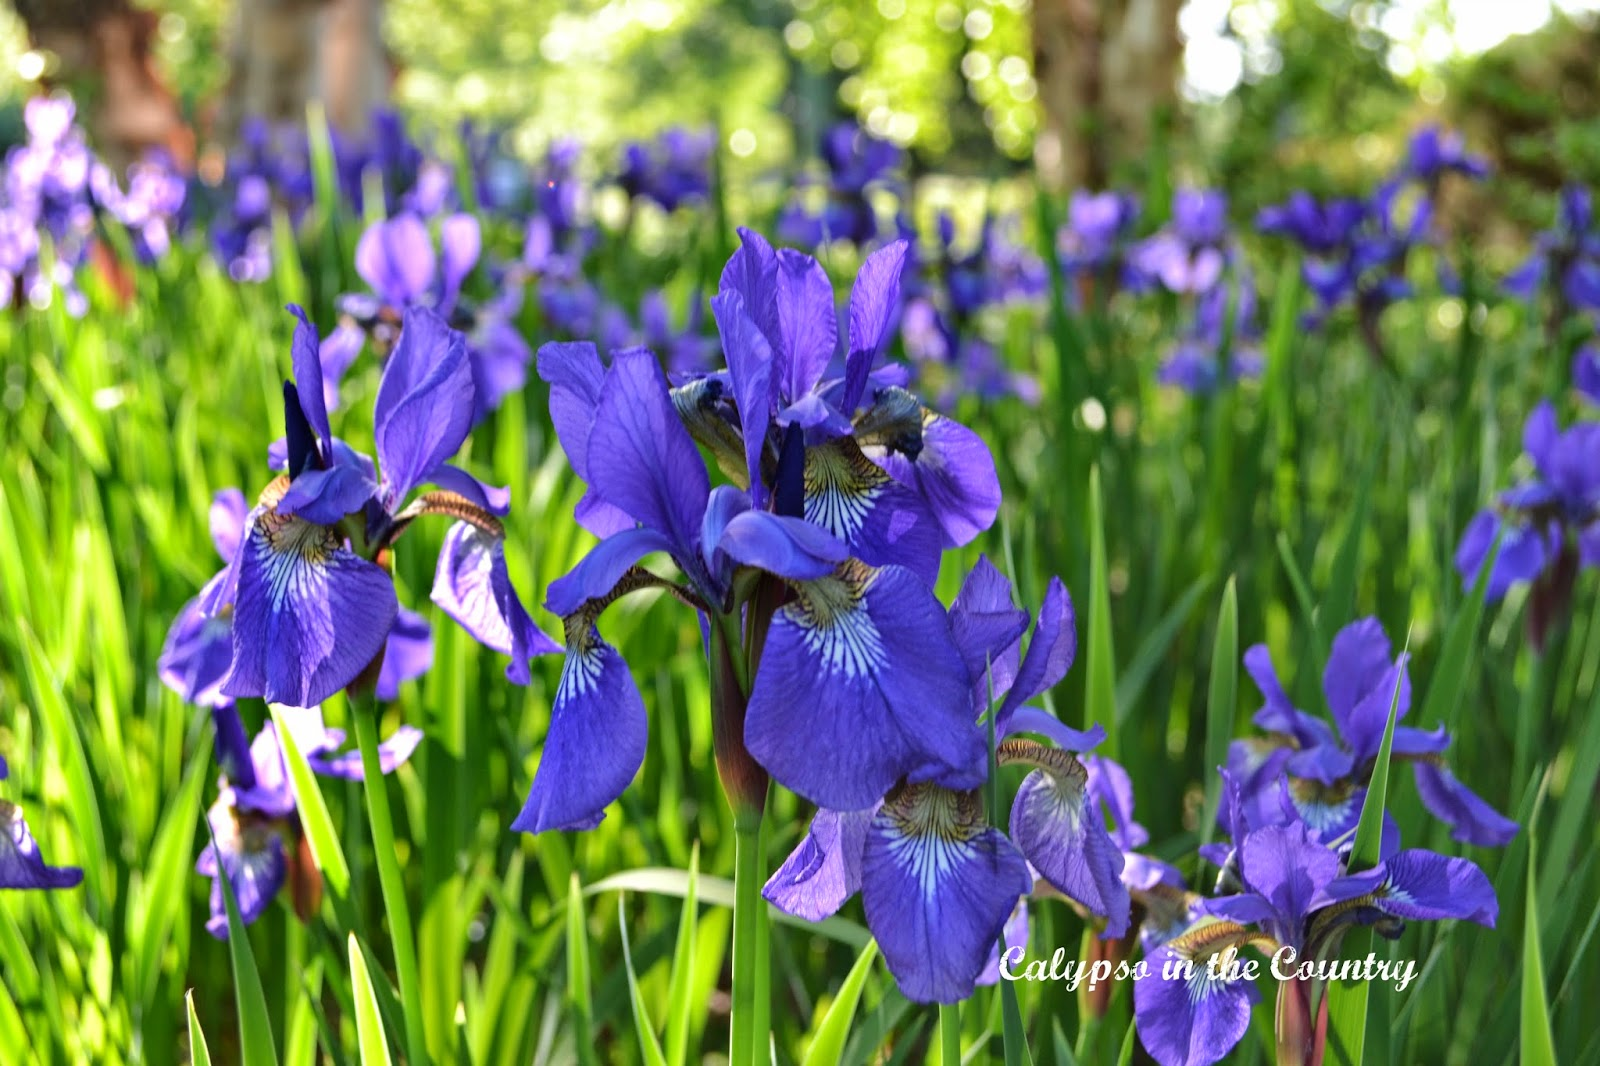 Purple Irises in bloom - love this time of year!